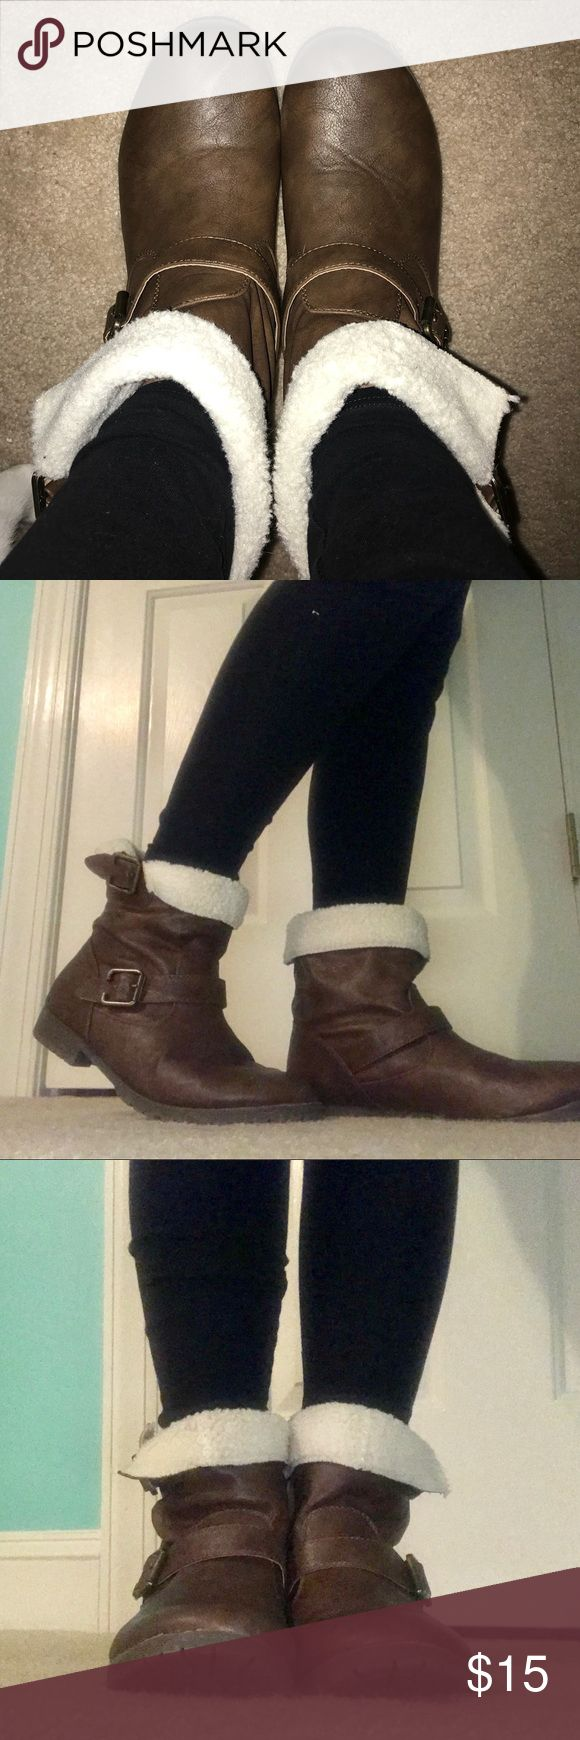 Aeropostale Boots Size 8, comfy, great condition! Aeropostale Shoes Ankle Boots & Booties